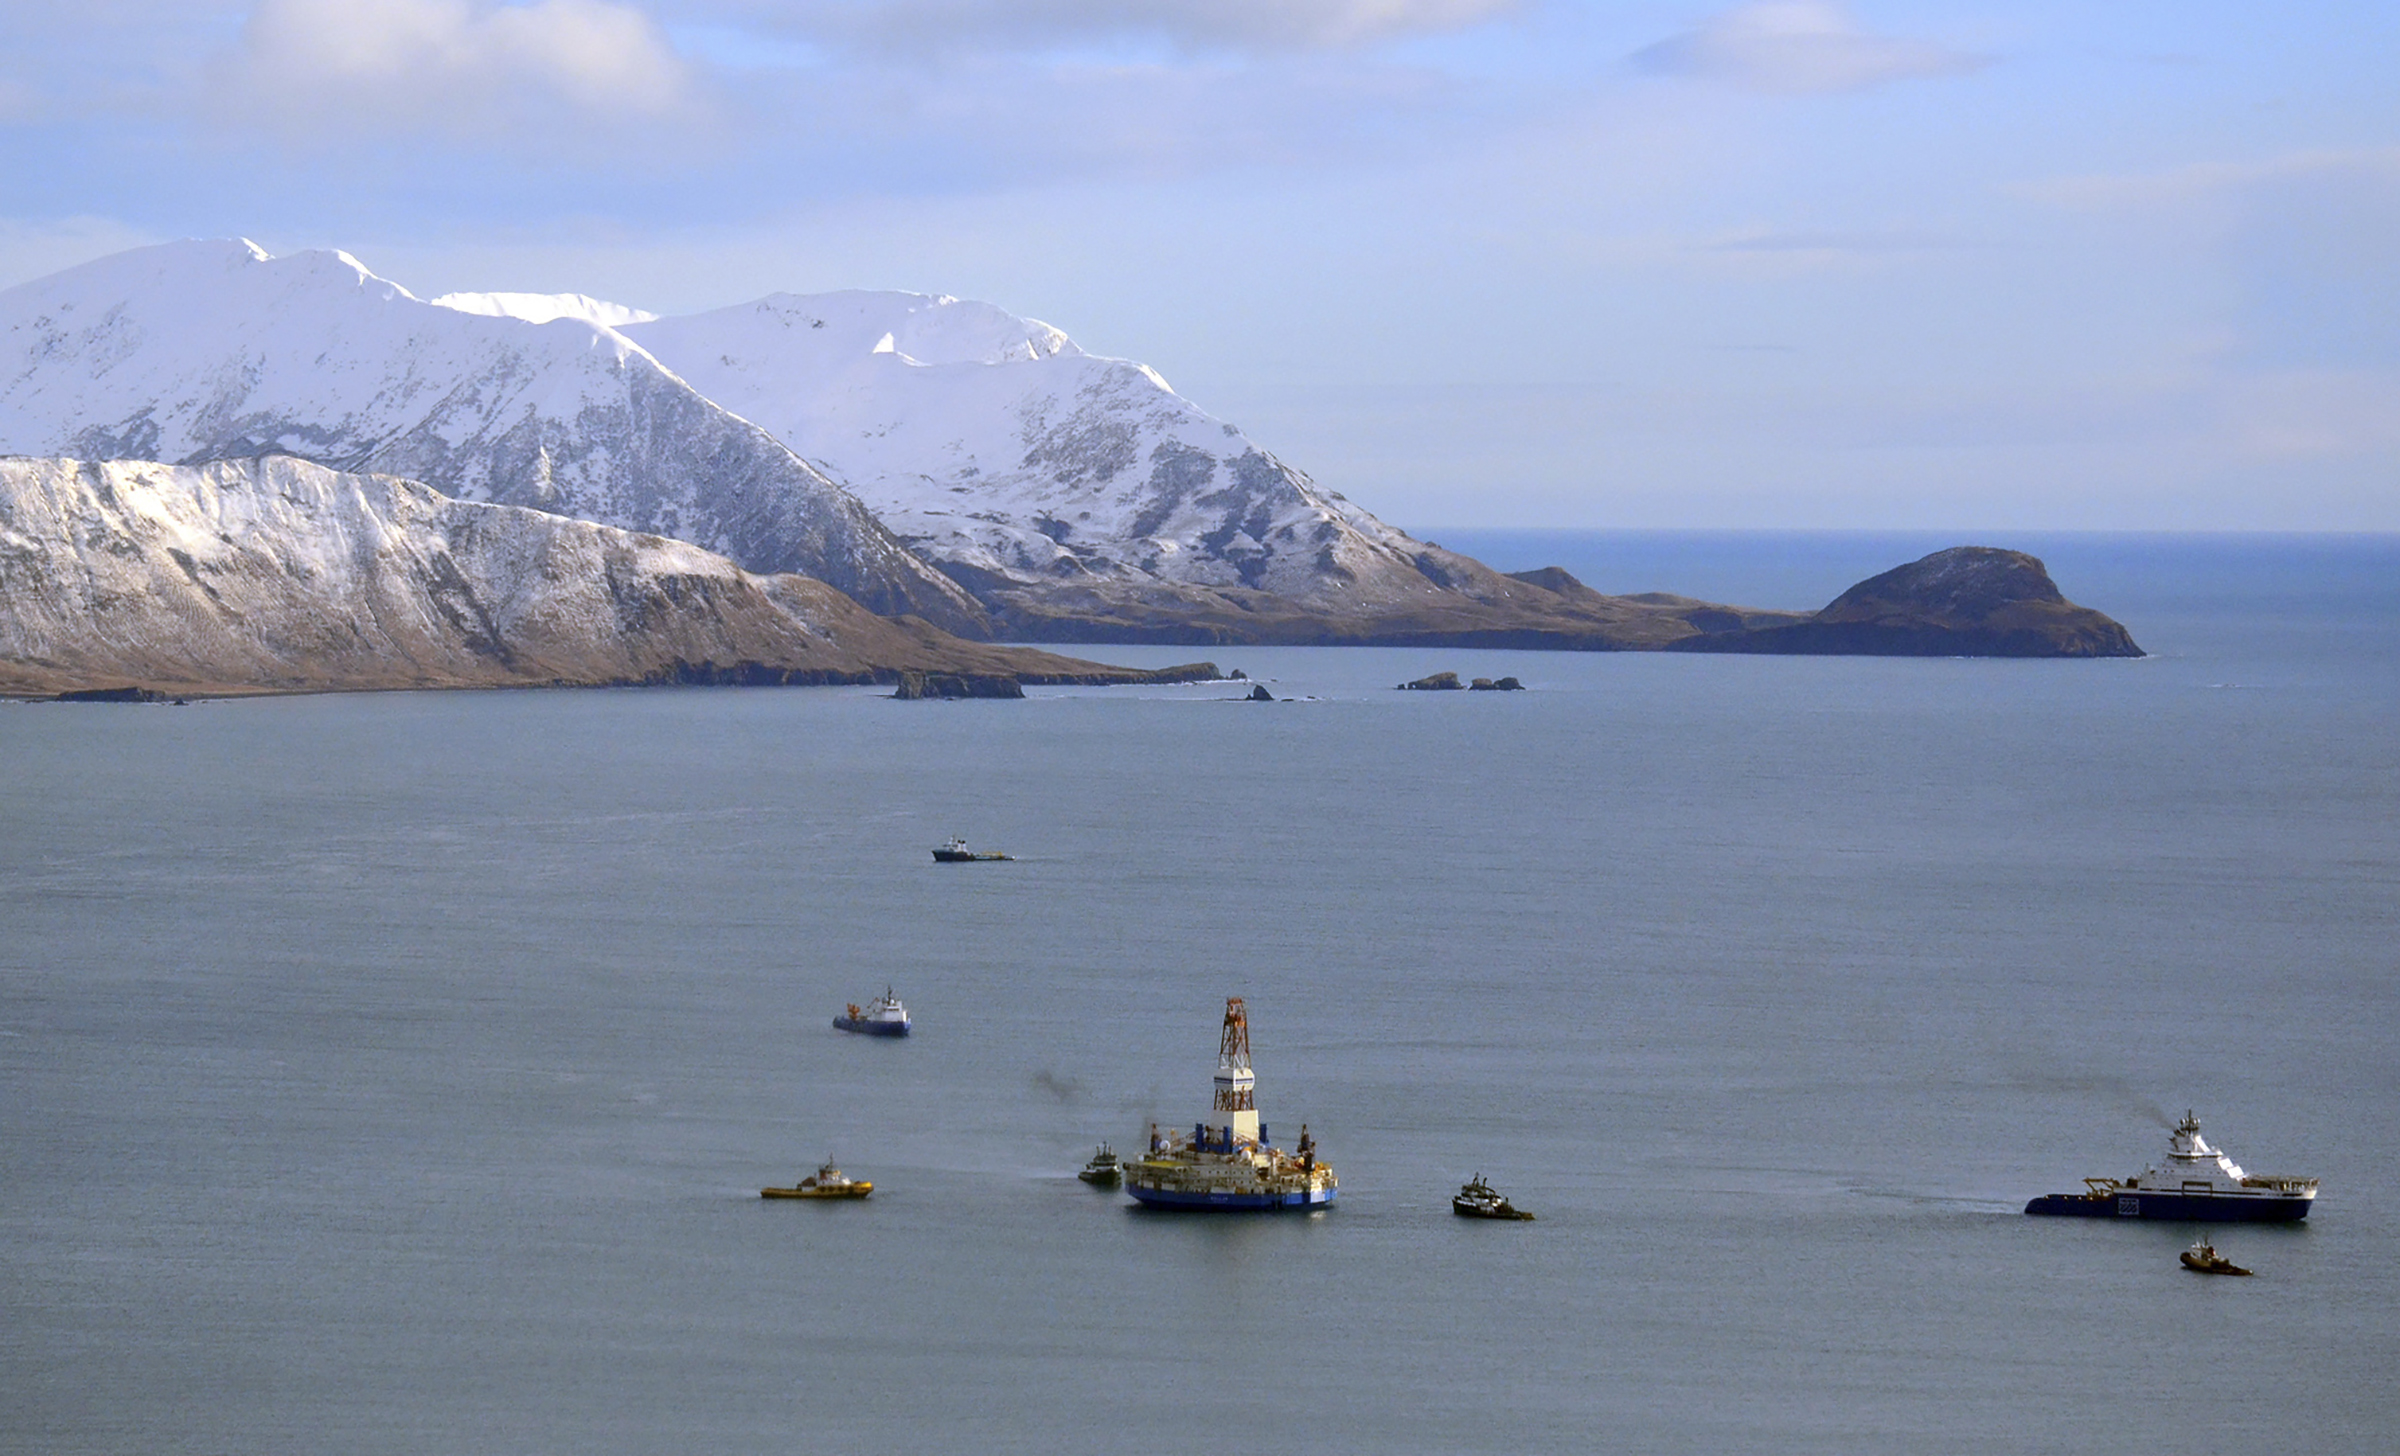 A floating drill rig Kulluk in Kodiak Island, Alaska's Kiliuda Bay as salvage teams conduct an in-depth assessment of its seaworthiness on Jan. 7, 2013.